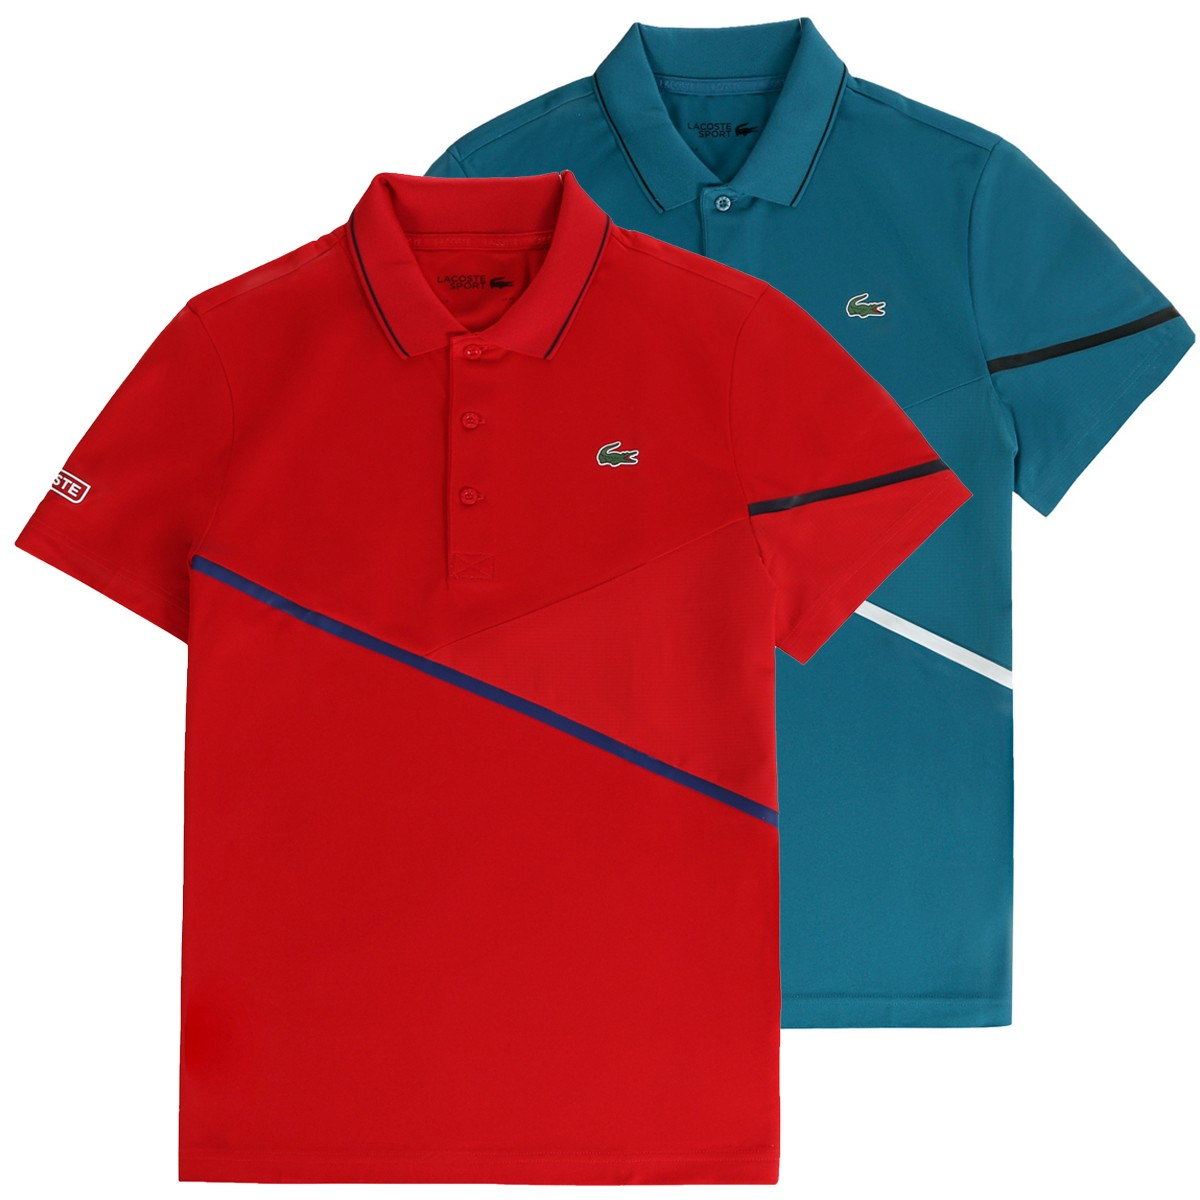 LACOSTE TENNIS AMERICAN TOURNAMENTS POLO